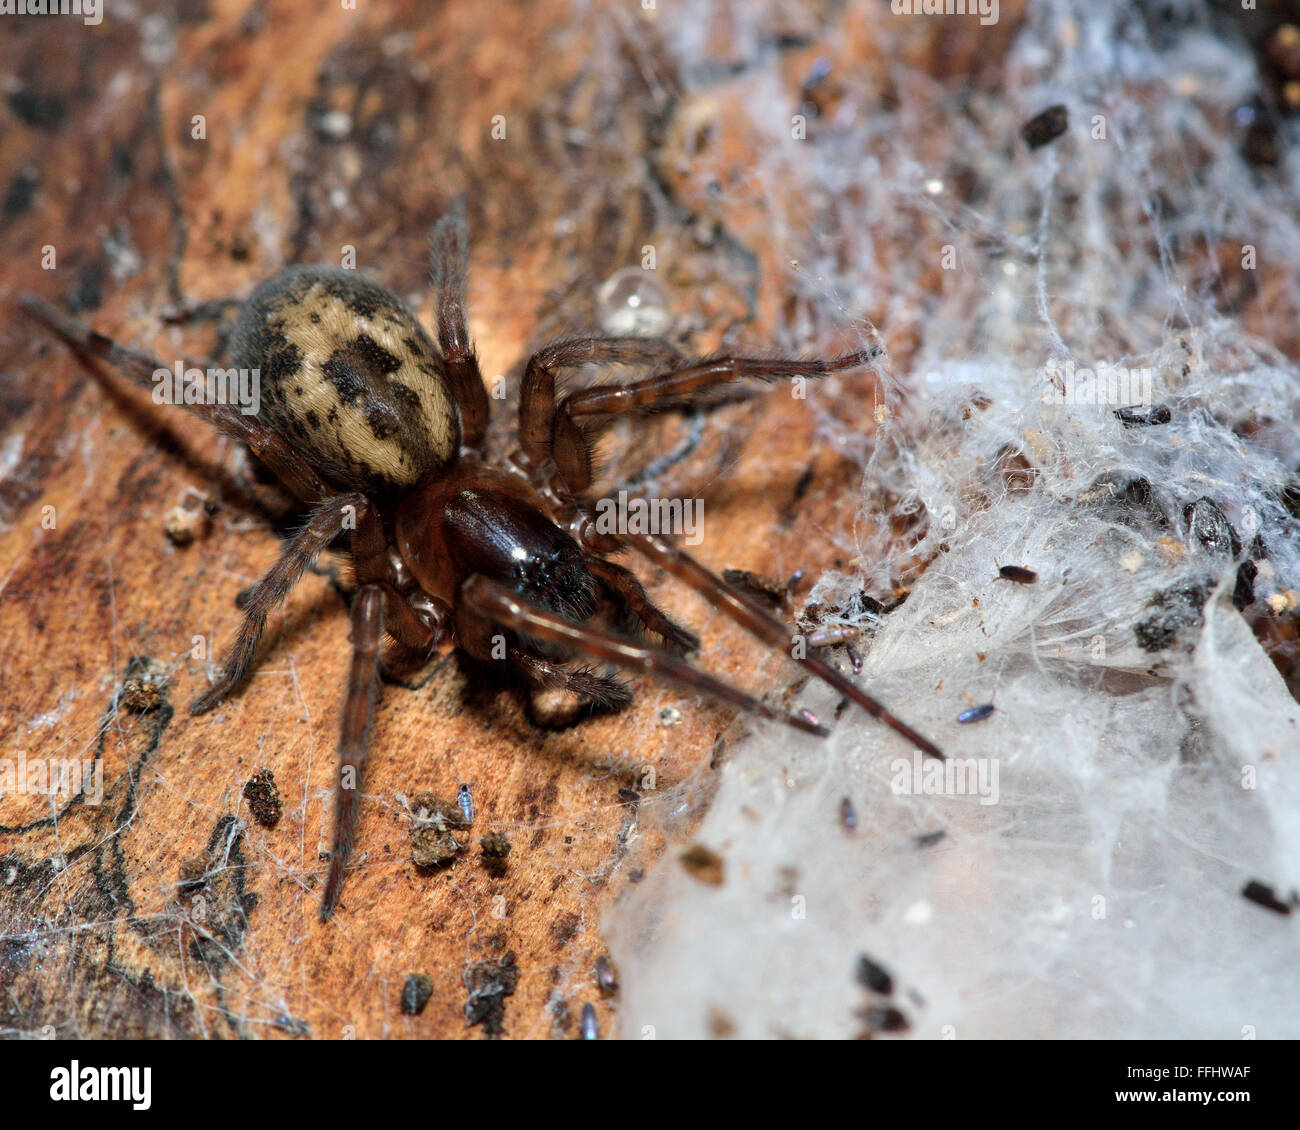 Lace webbed spider (Amaurobius fenestralis). Female spider in the family Amaurobiidae with web, discovered under - Stock Image